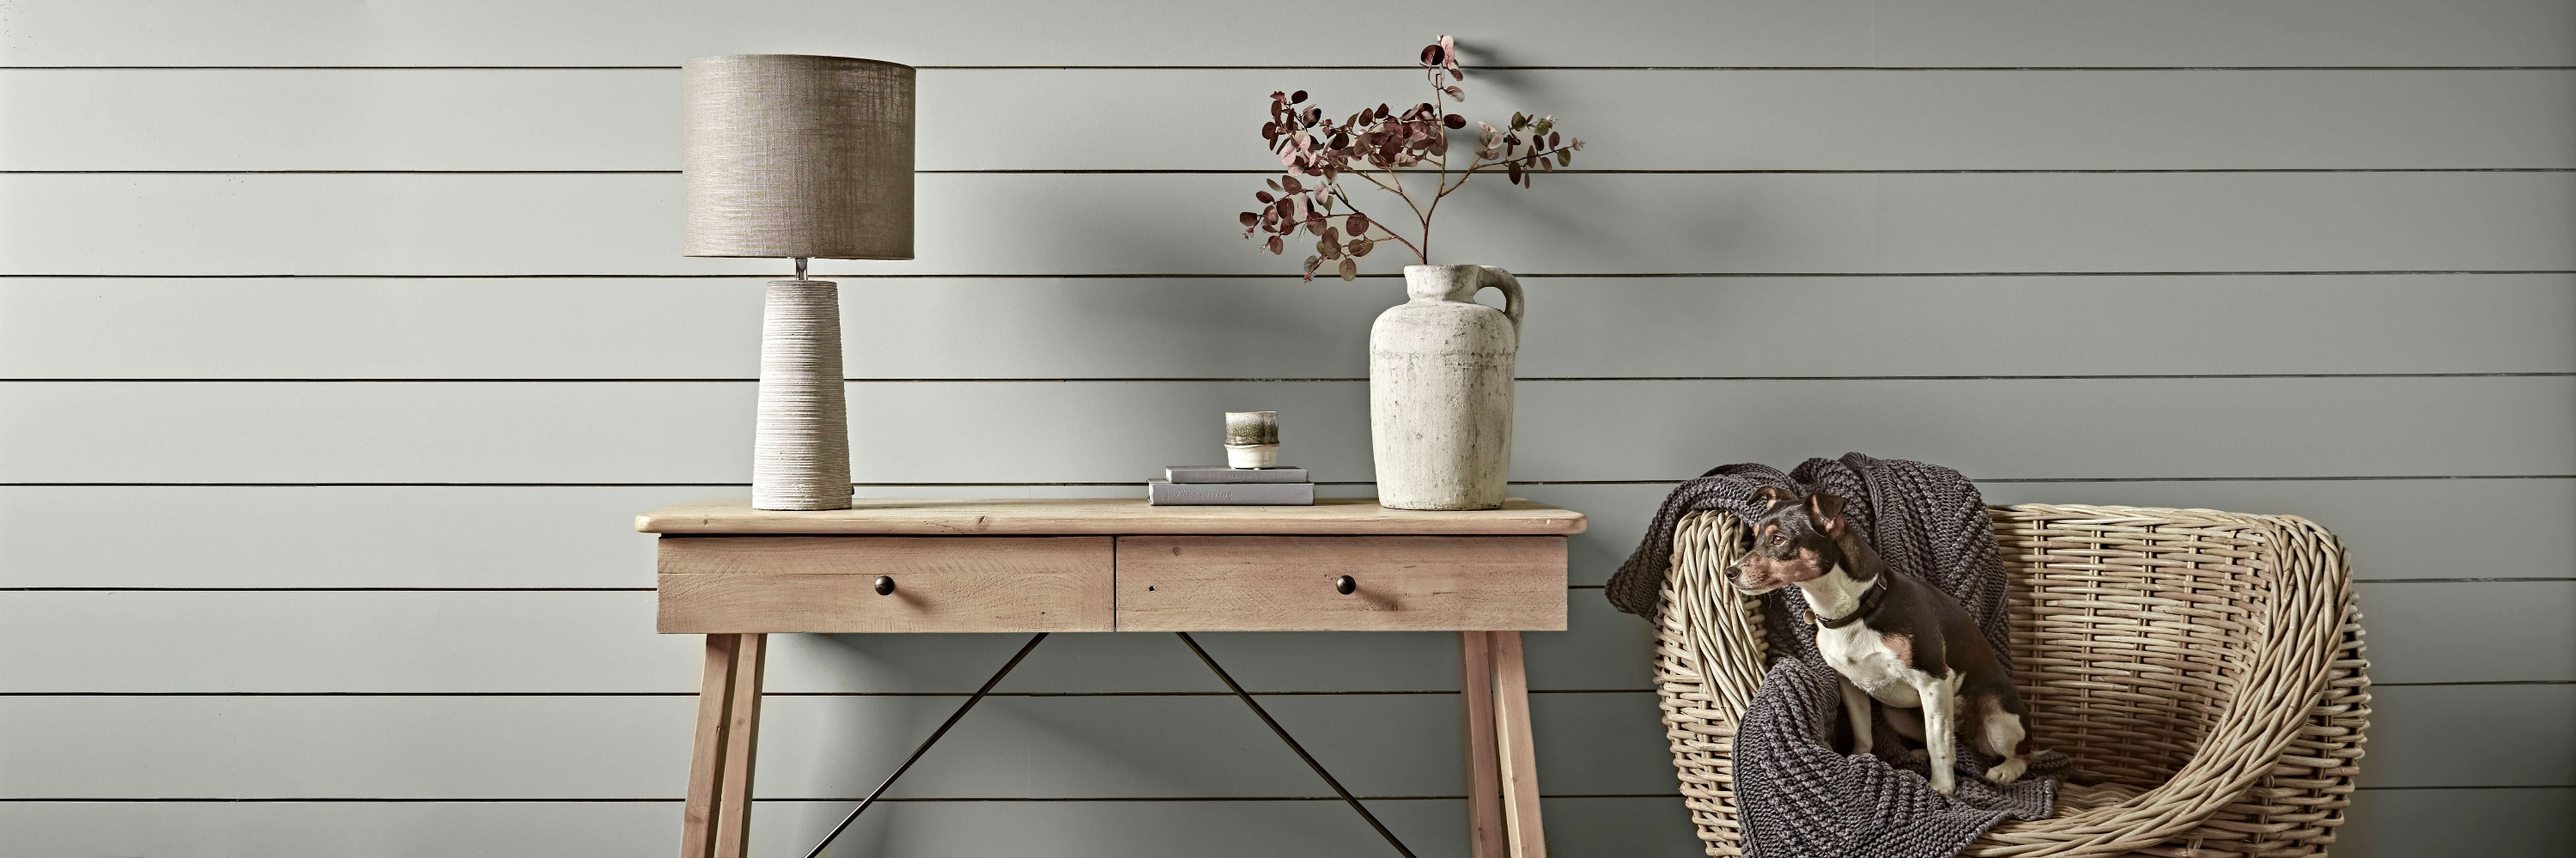 coxandcox.co.uk - Home Decor Products starting at just £4